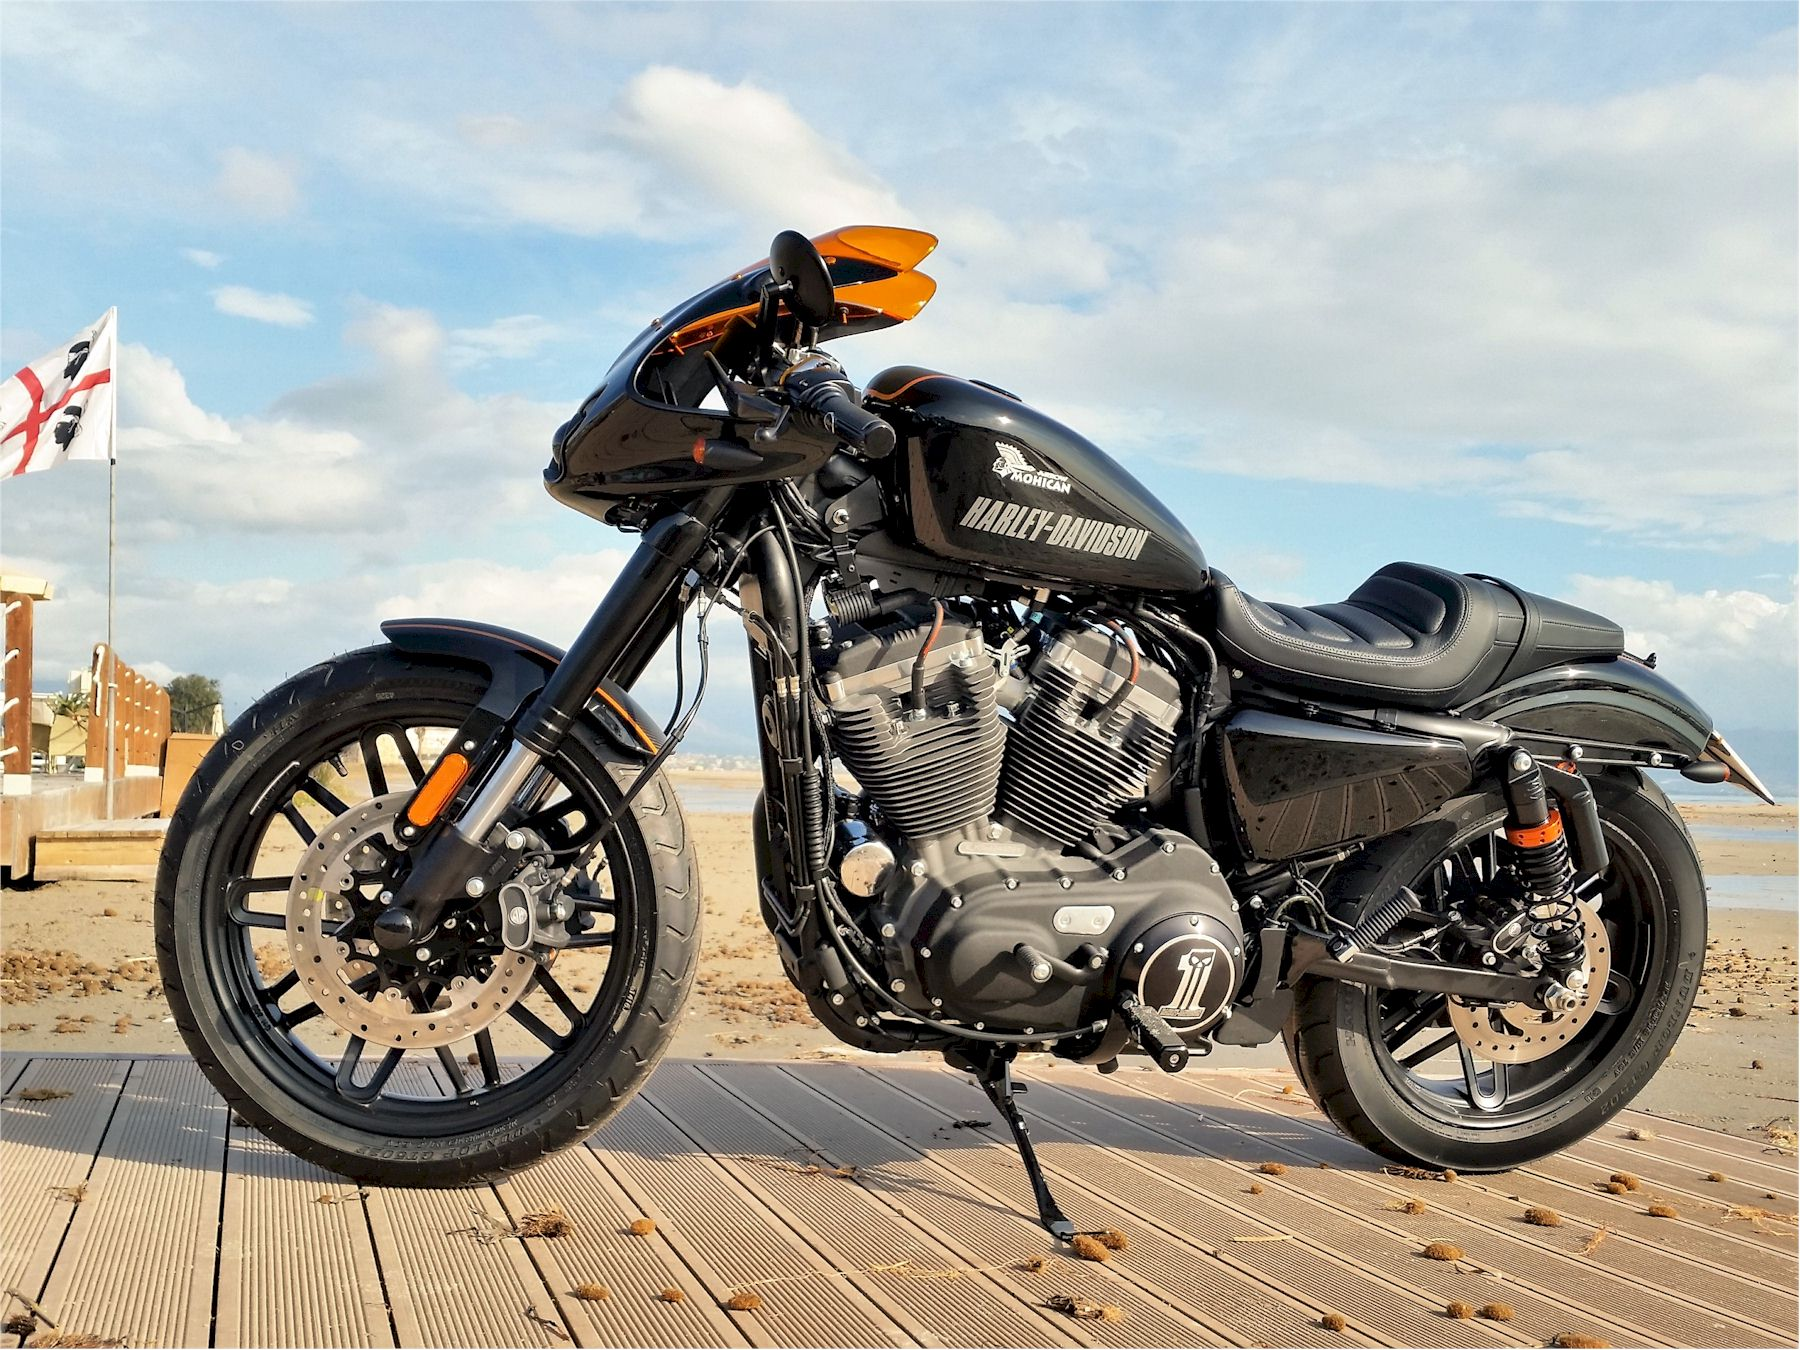 Special Harley Davidson® 883 with black Mohican Exhaust Full system